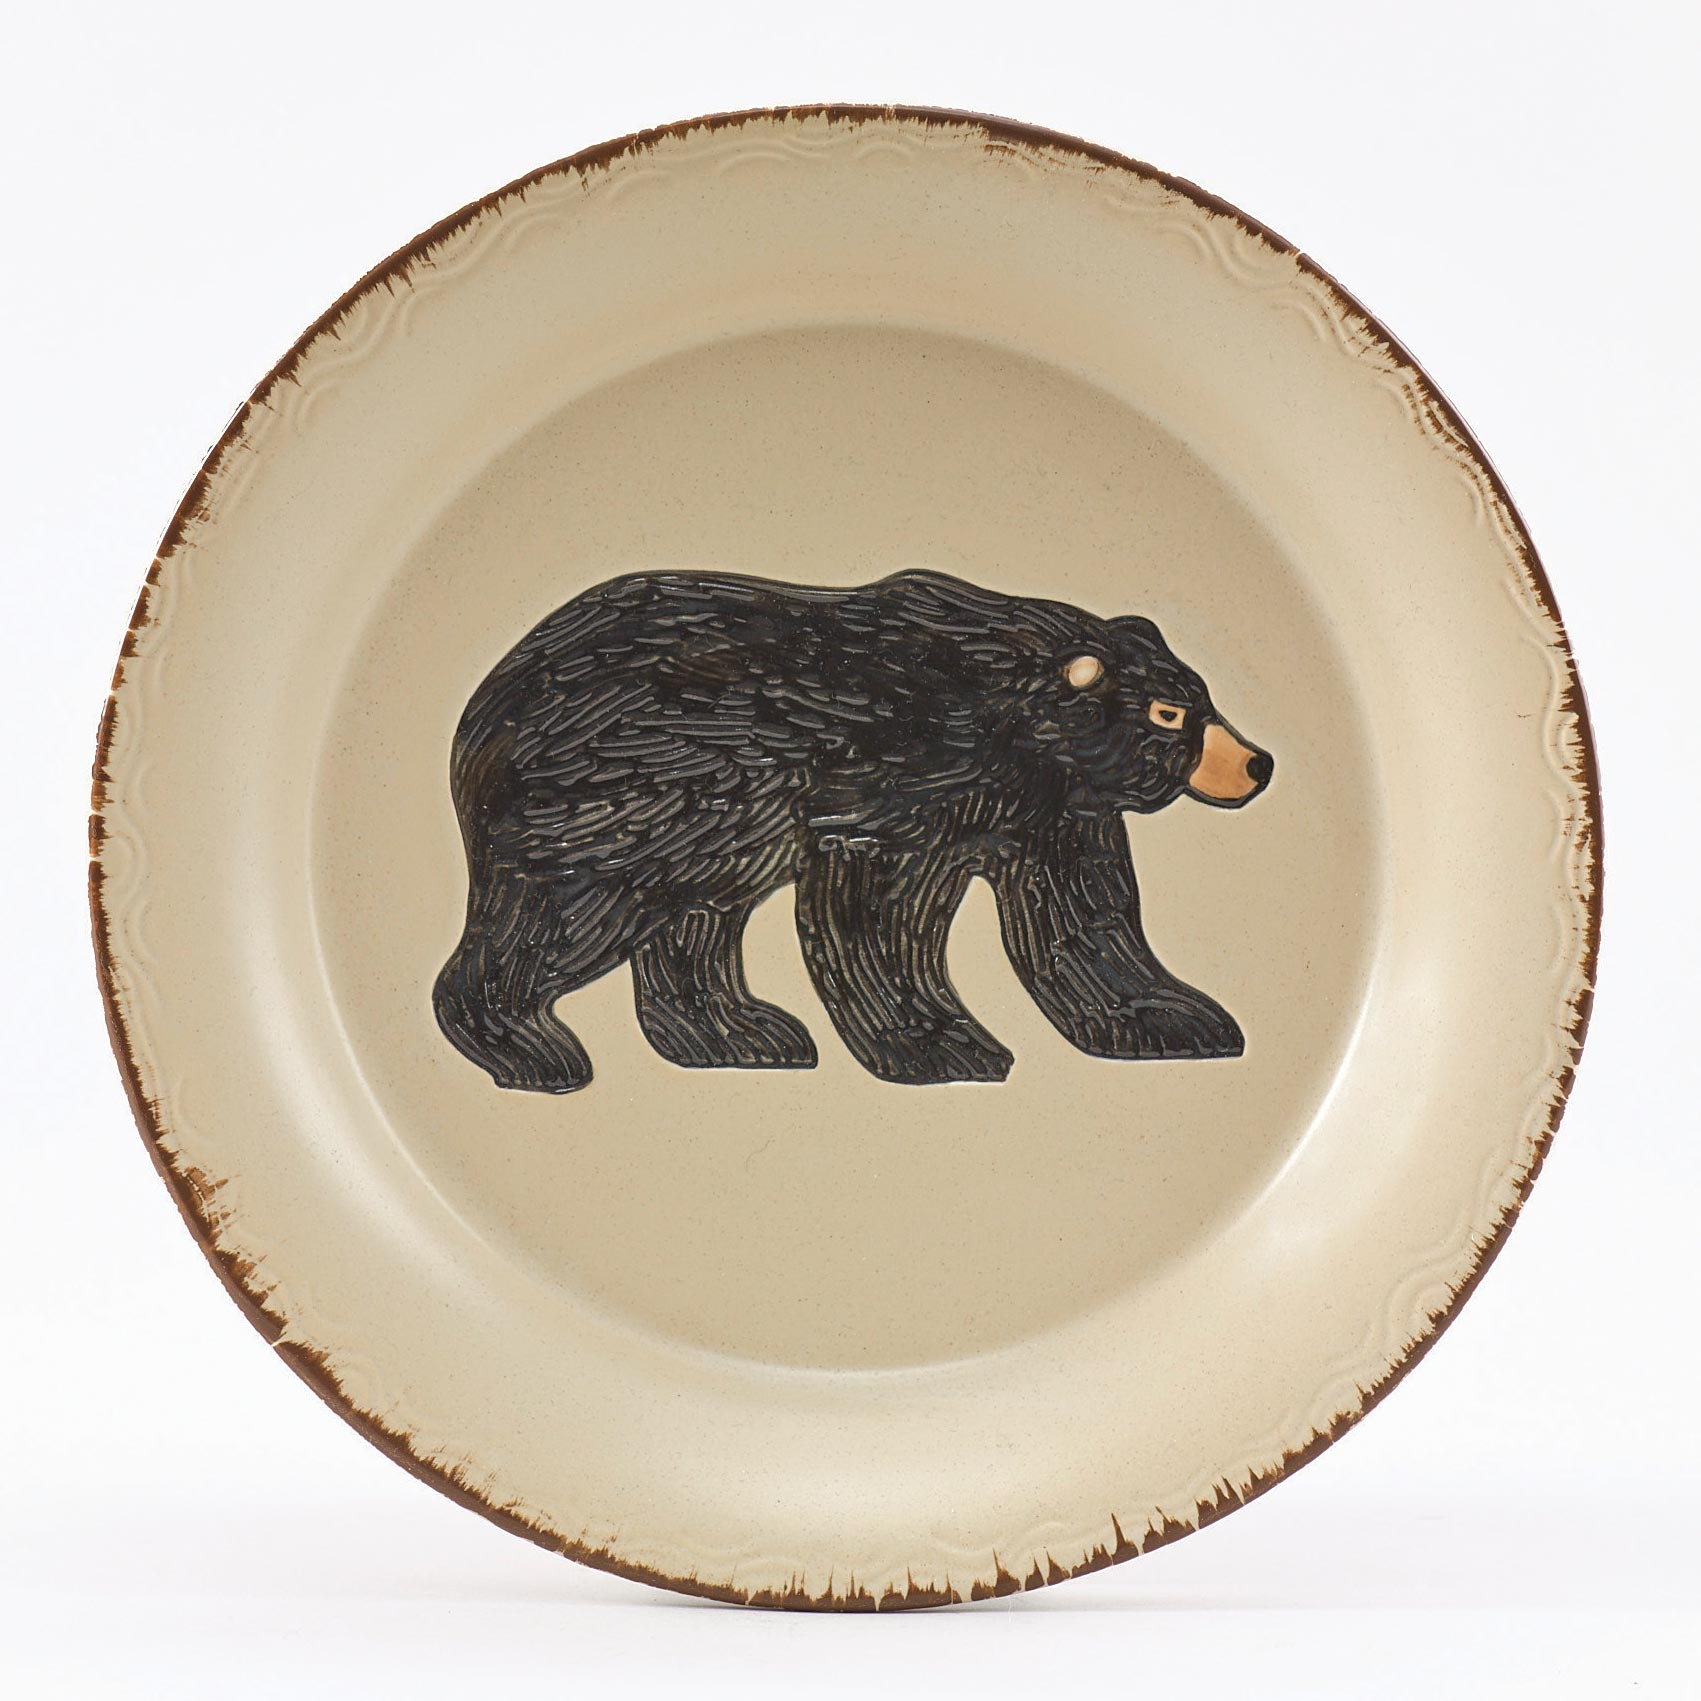 PKD-493-652B-Rustic-Retreat-Salad-Plate-Set-Bear-LRG